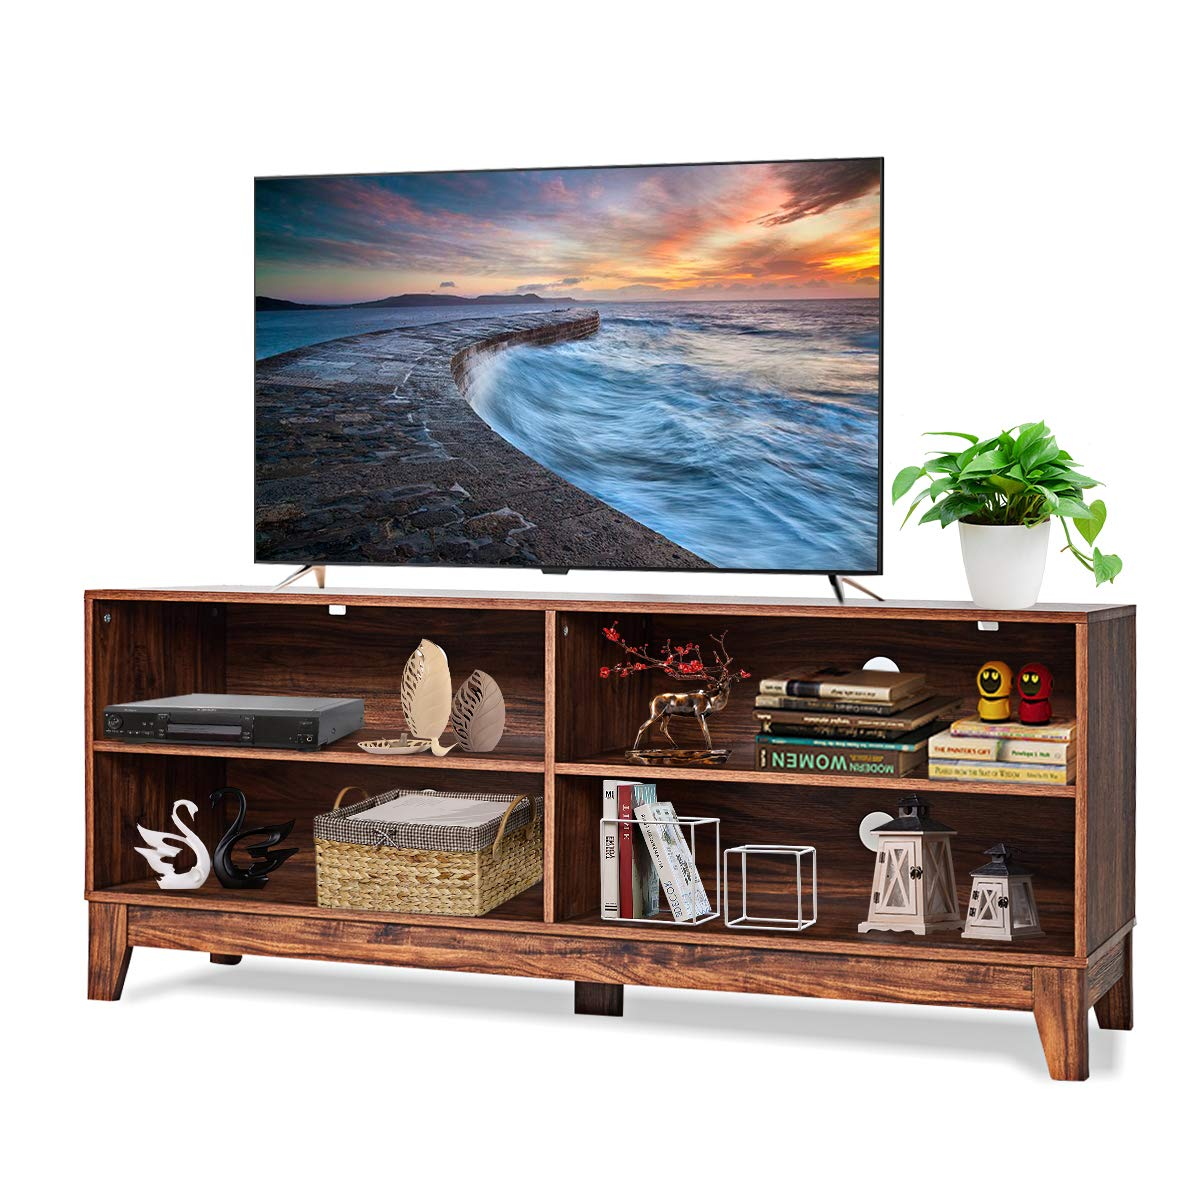 Tangkula TV Stand, Modern Design Wooden Storage Console Entertainment Center for TV up to 60'', Home Living Room Furniture with 4 Open Storage Shelves, Television Stands (Brown) by Tangkula